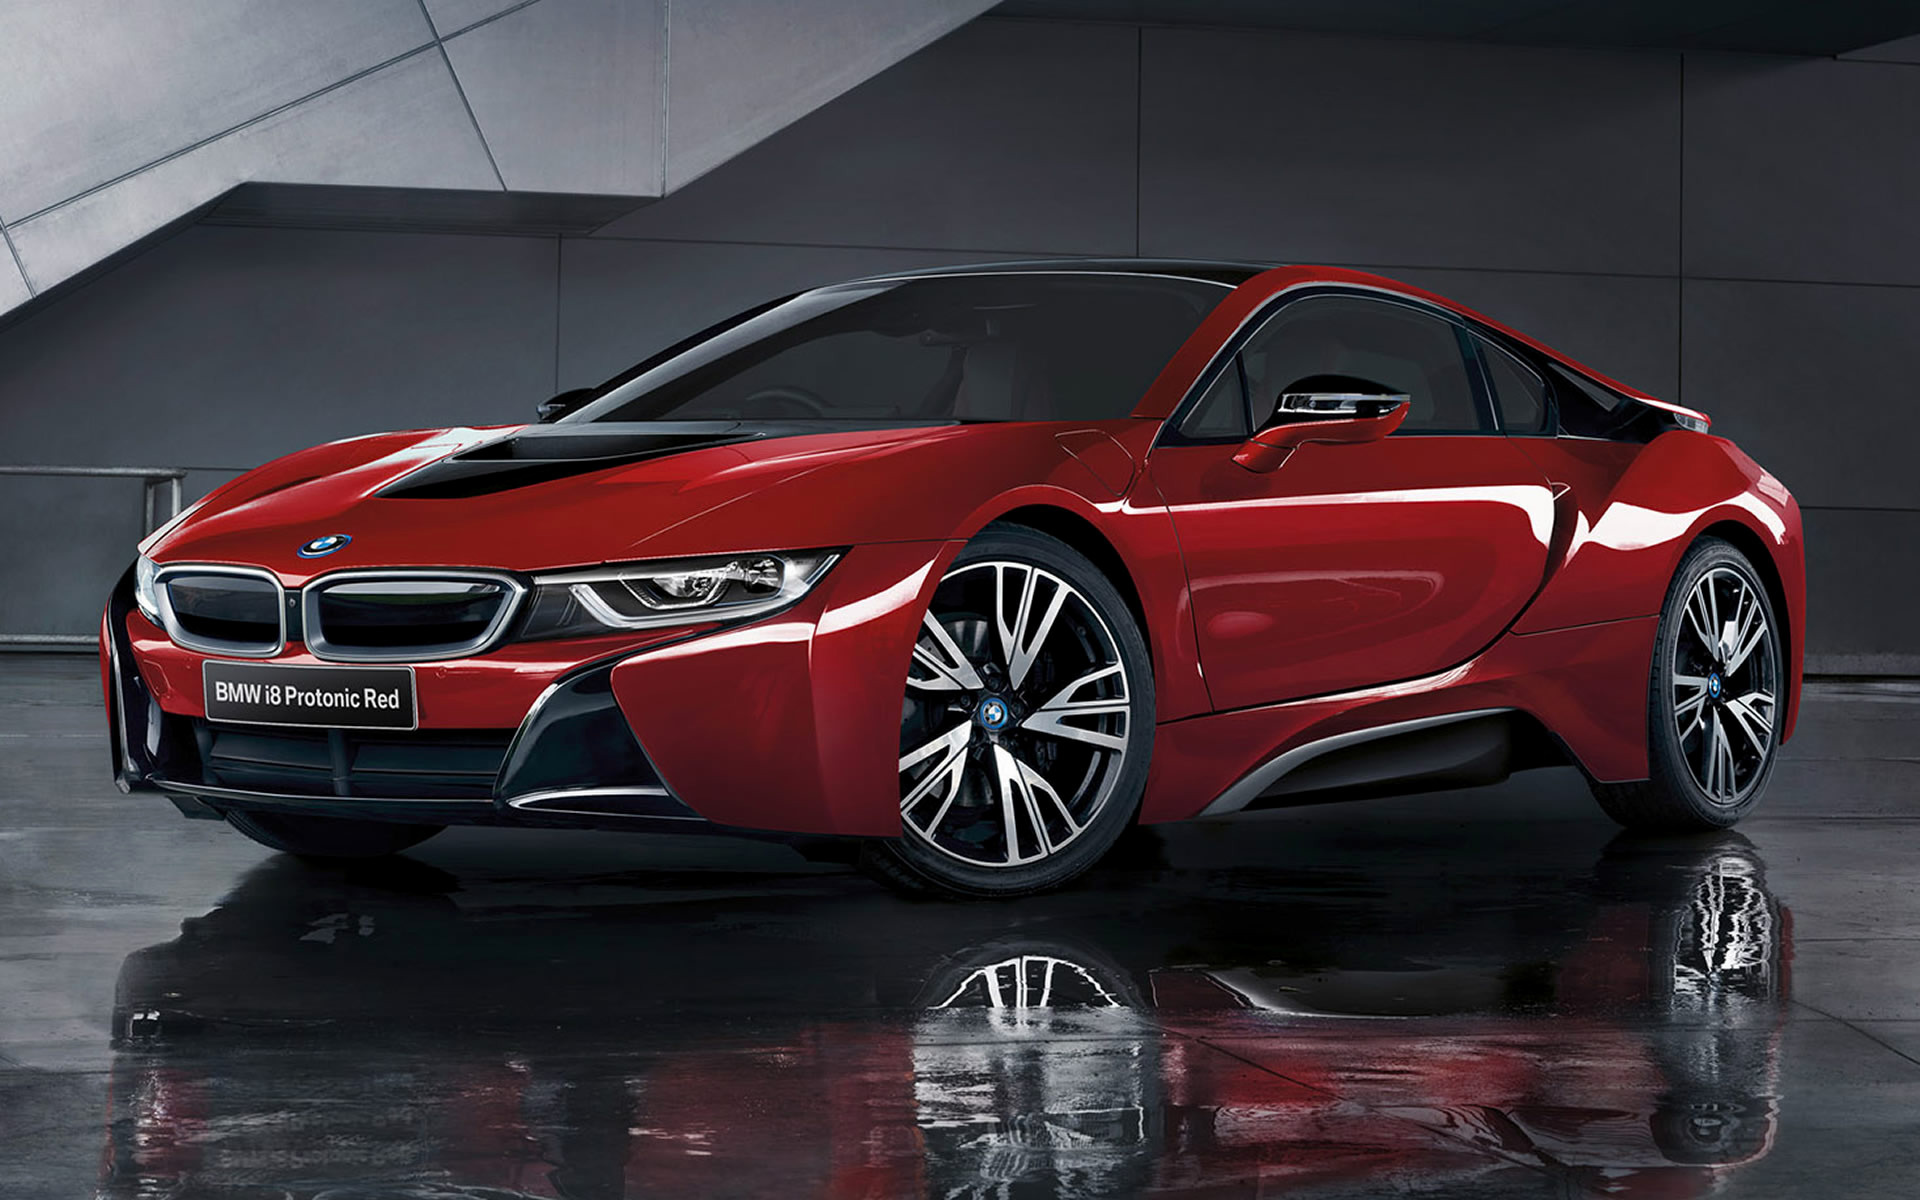 Dodge Ram 2015 >> 2016 BMW i8 Protonic Red Edition - Wallpapers and HD ...